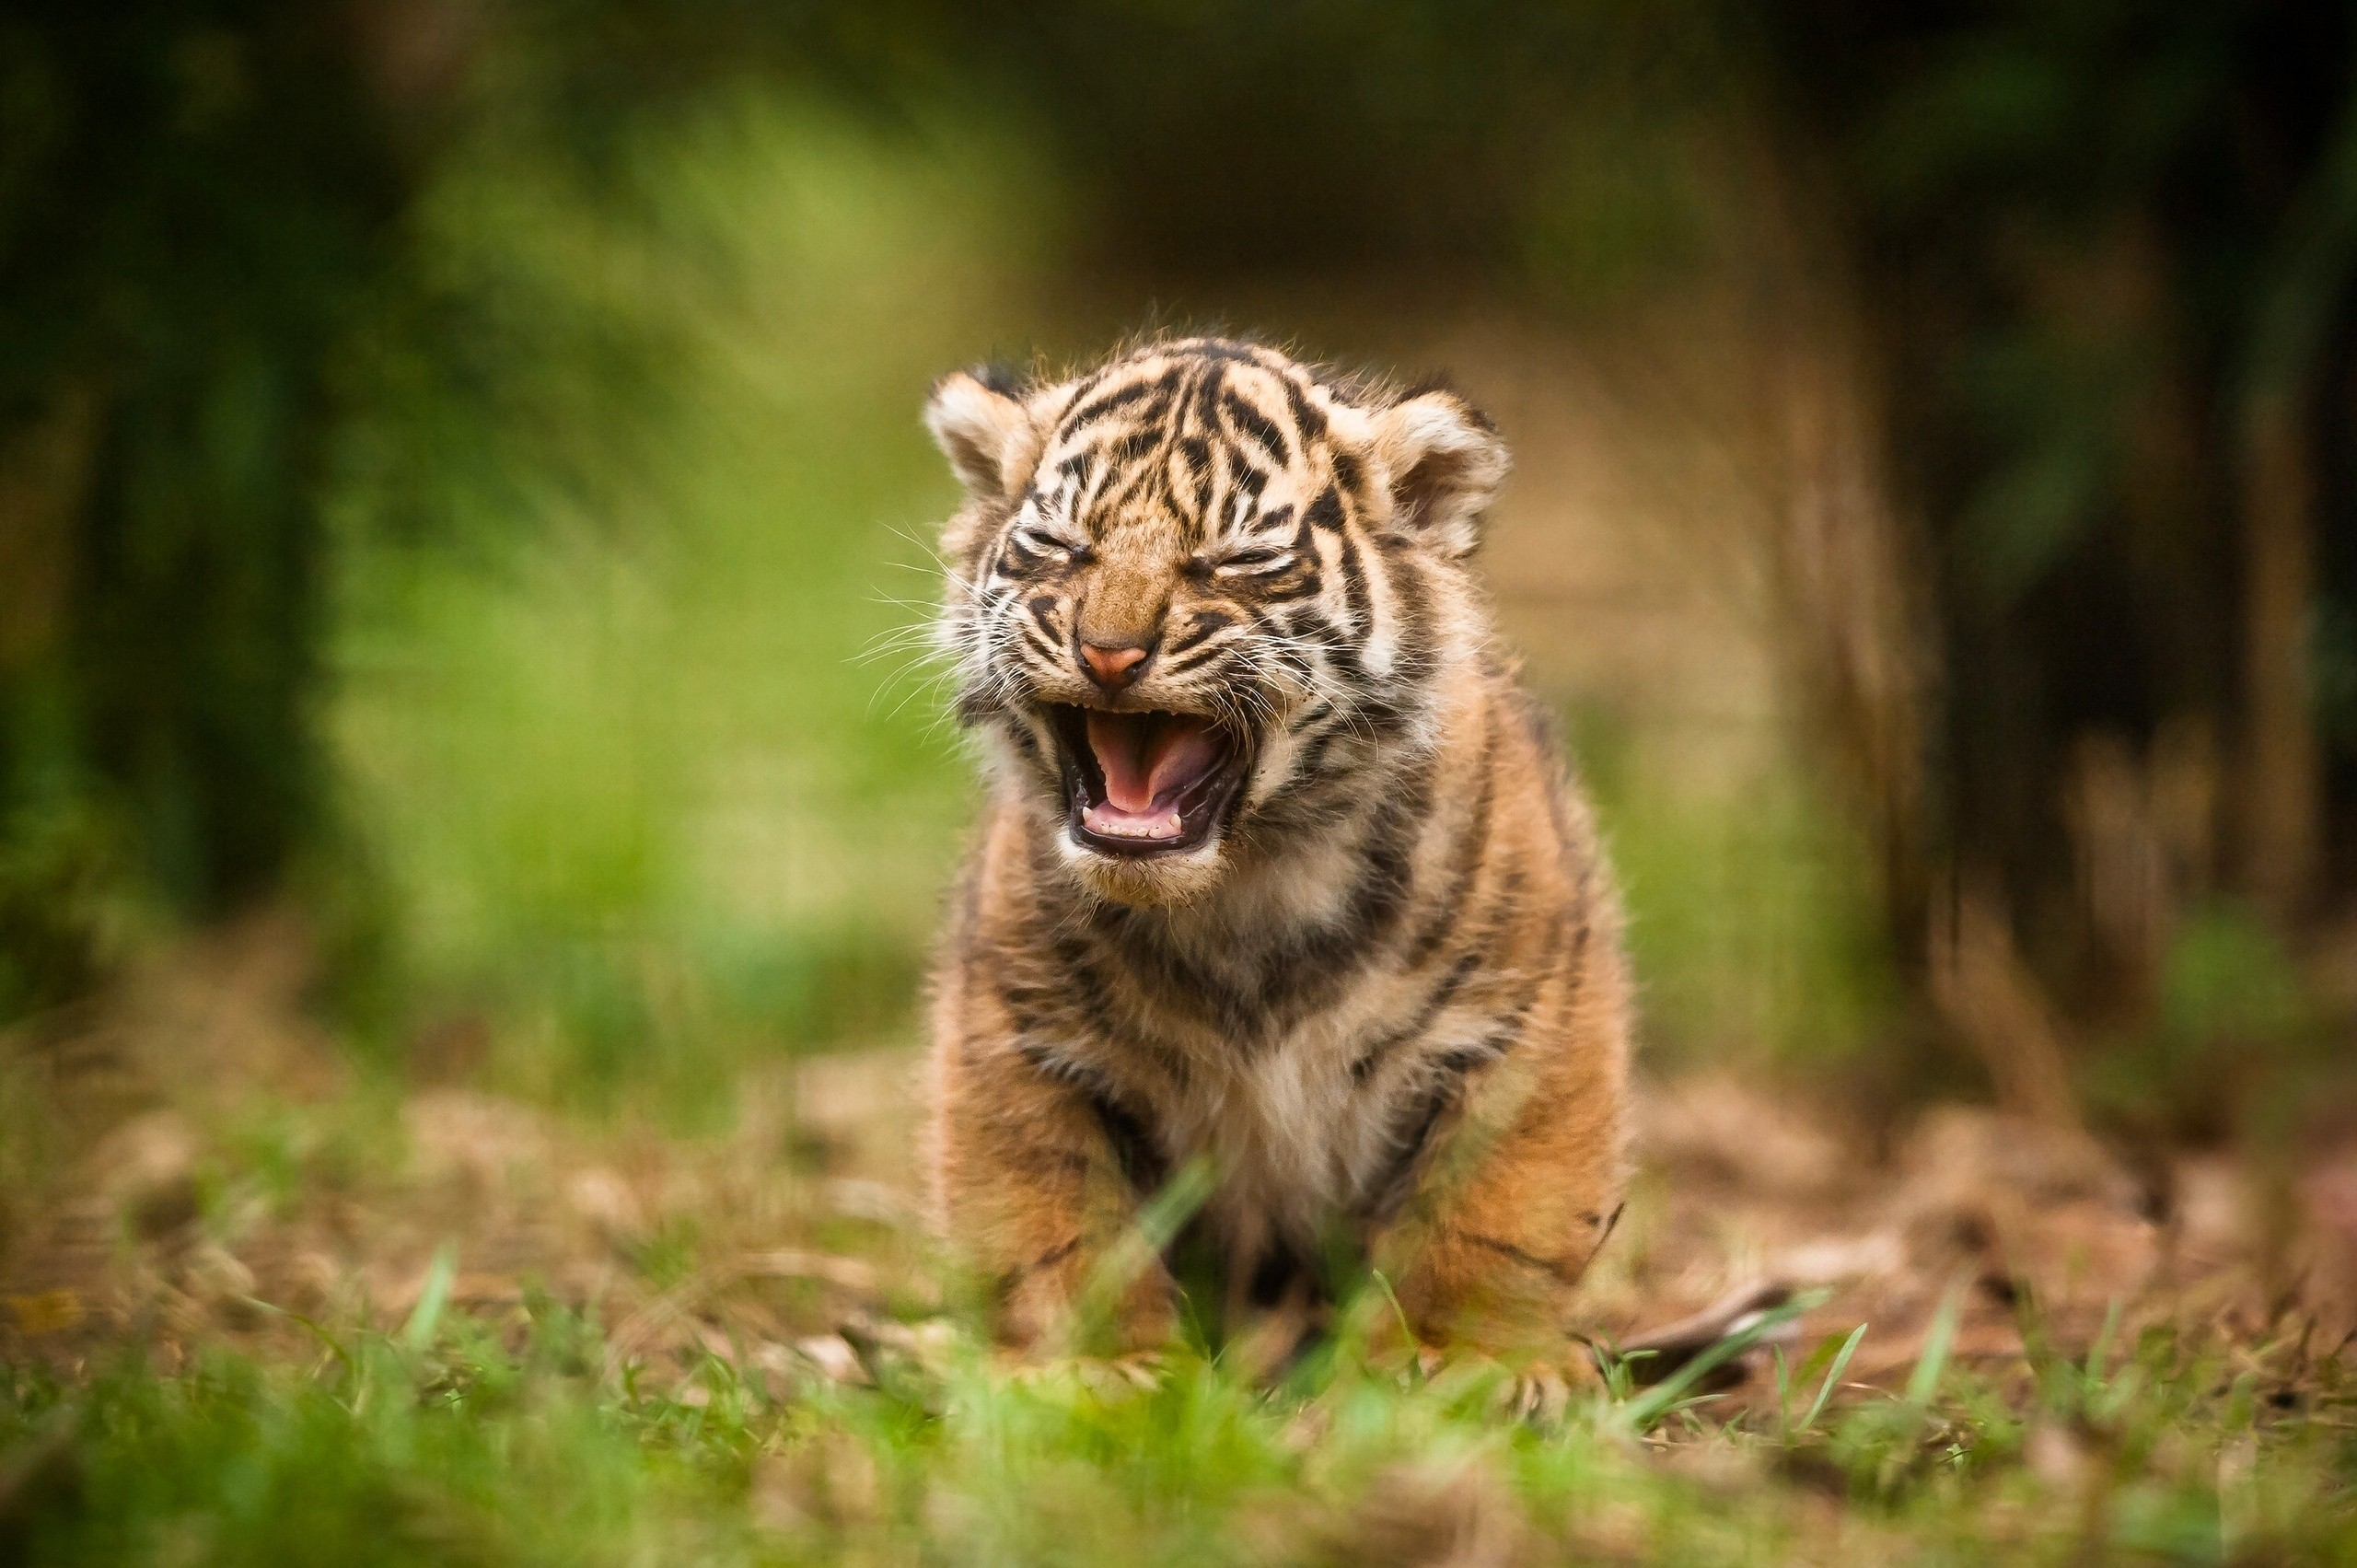 Cute Cub Hd Animals 4k Wallpapers Images Backgrounds Photos And